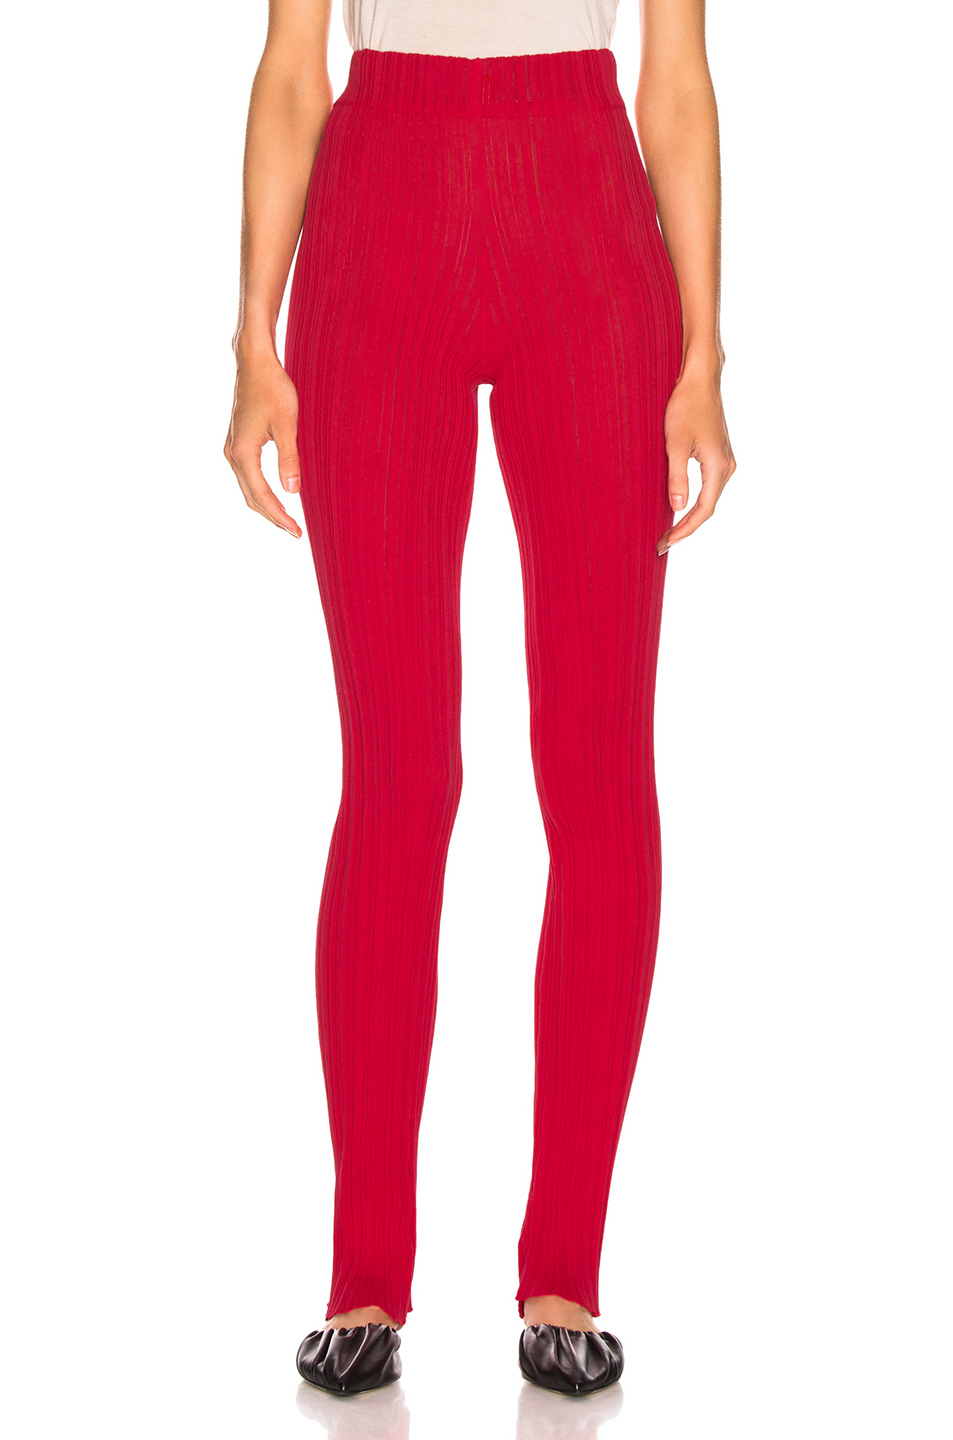 Acne Studios Keera Pant In Tomato Red